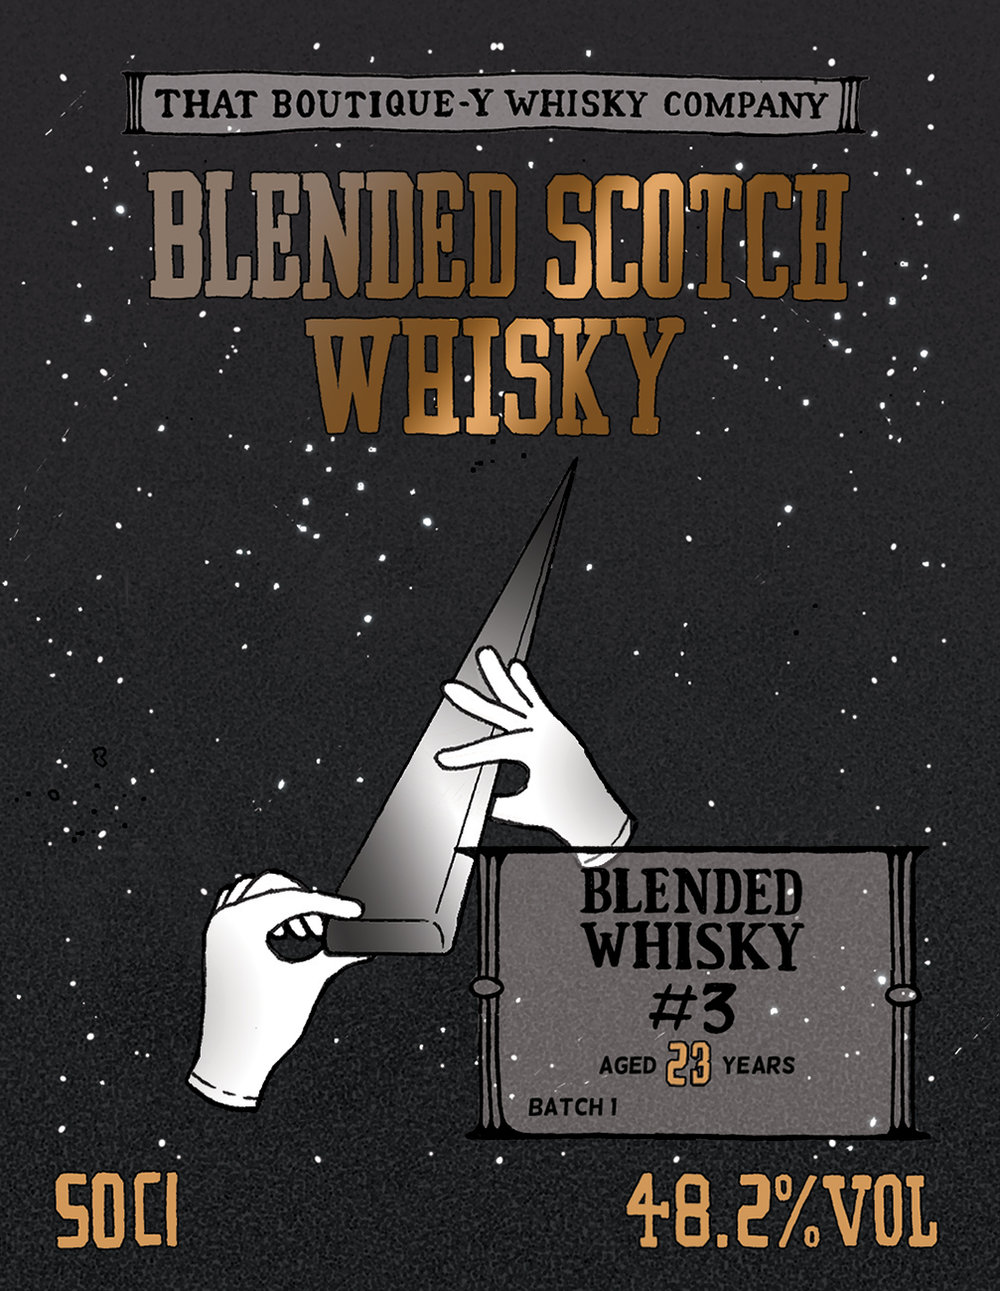 Blended Scotch Whisky 3 B1.jpg